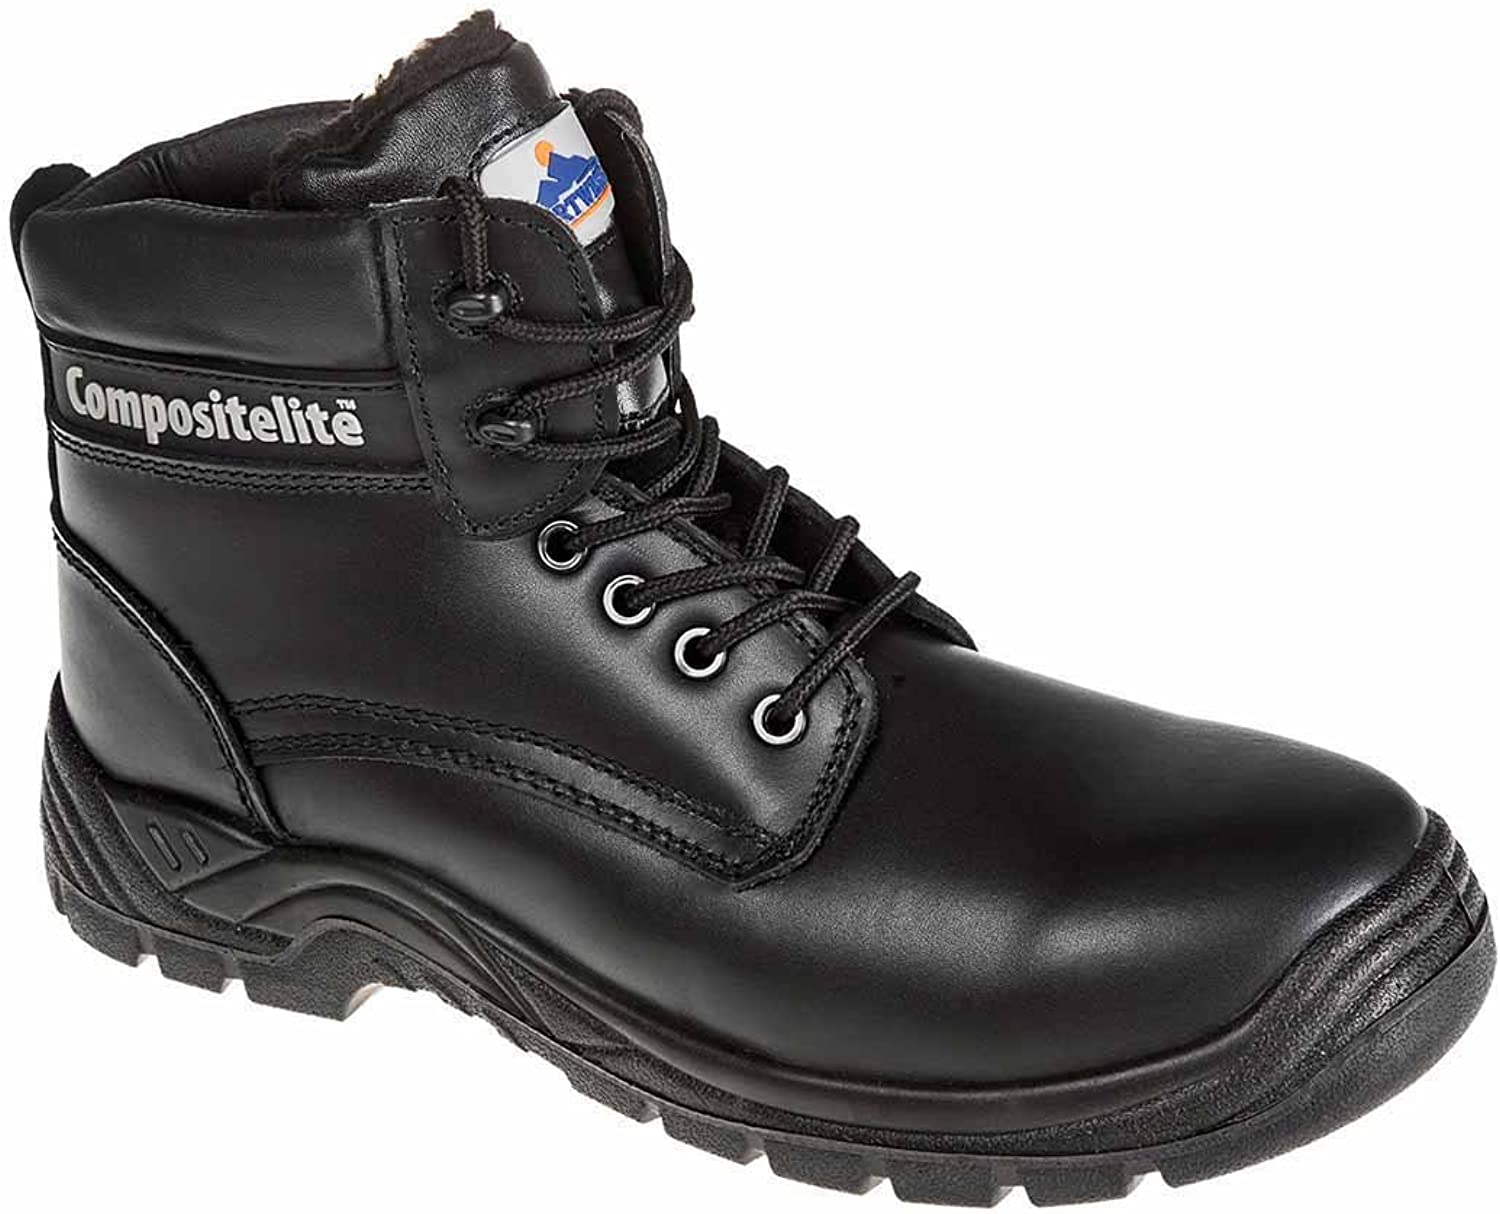 SUw - Compositelite Fur Lined Thor Workwear Ankle Workwear Ankle Boot S3 CI - Black - UK 7